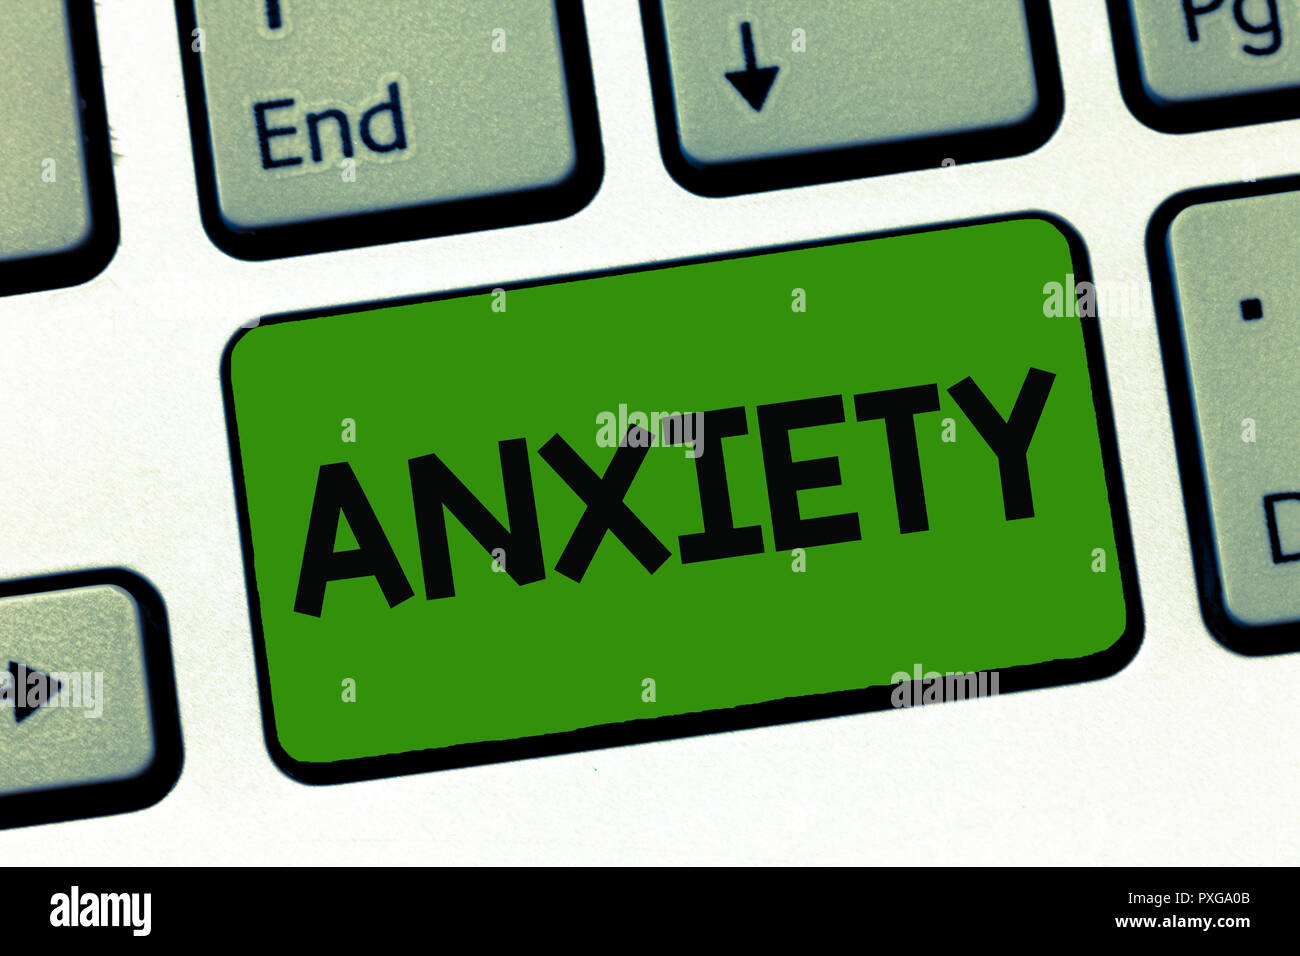 Word writing text Anxiety. Business concept for Excessive uneasiness and apprehension Panic attack syndrome. - Stock Image